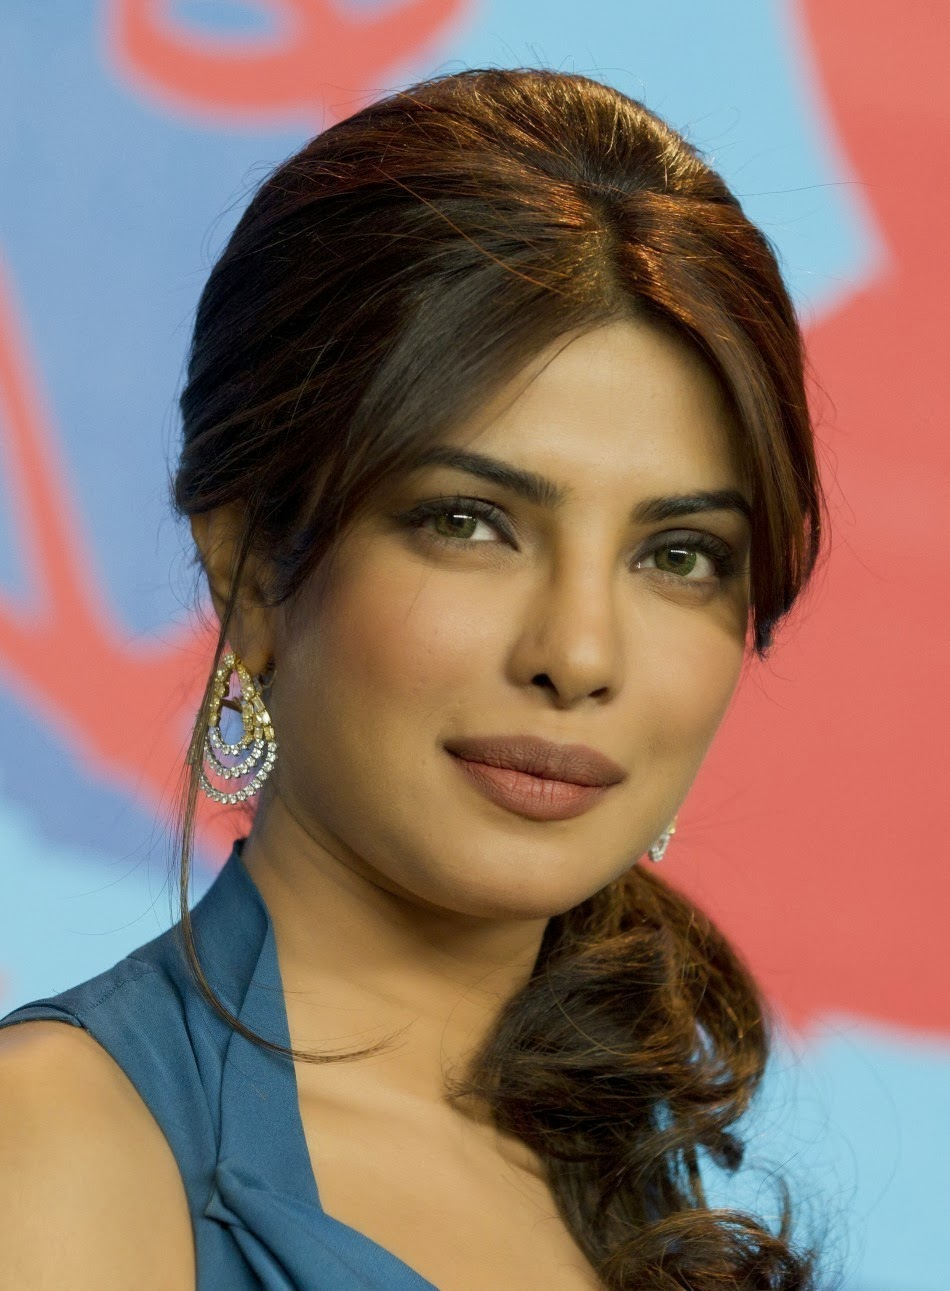 Good Morning Hd Wallpaper With Cute Baby Priyanka Chopra S Hot Wallpapers Allfreshwallpaper